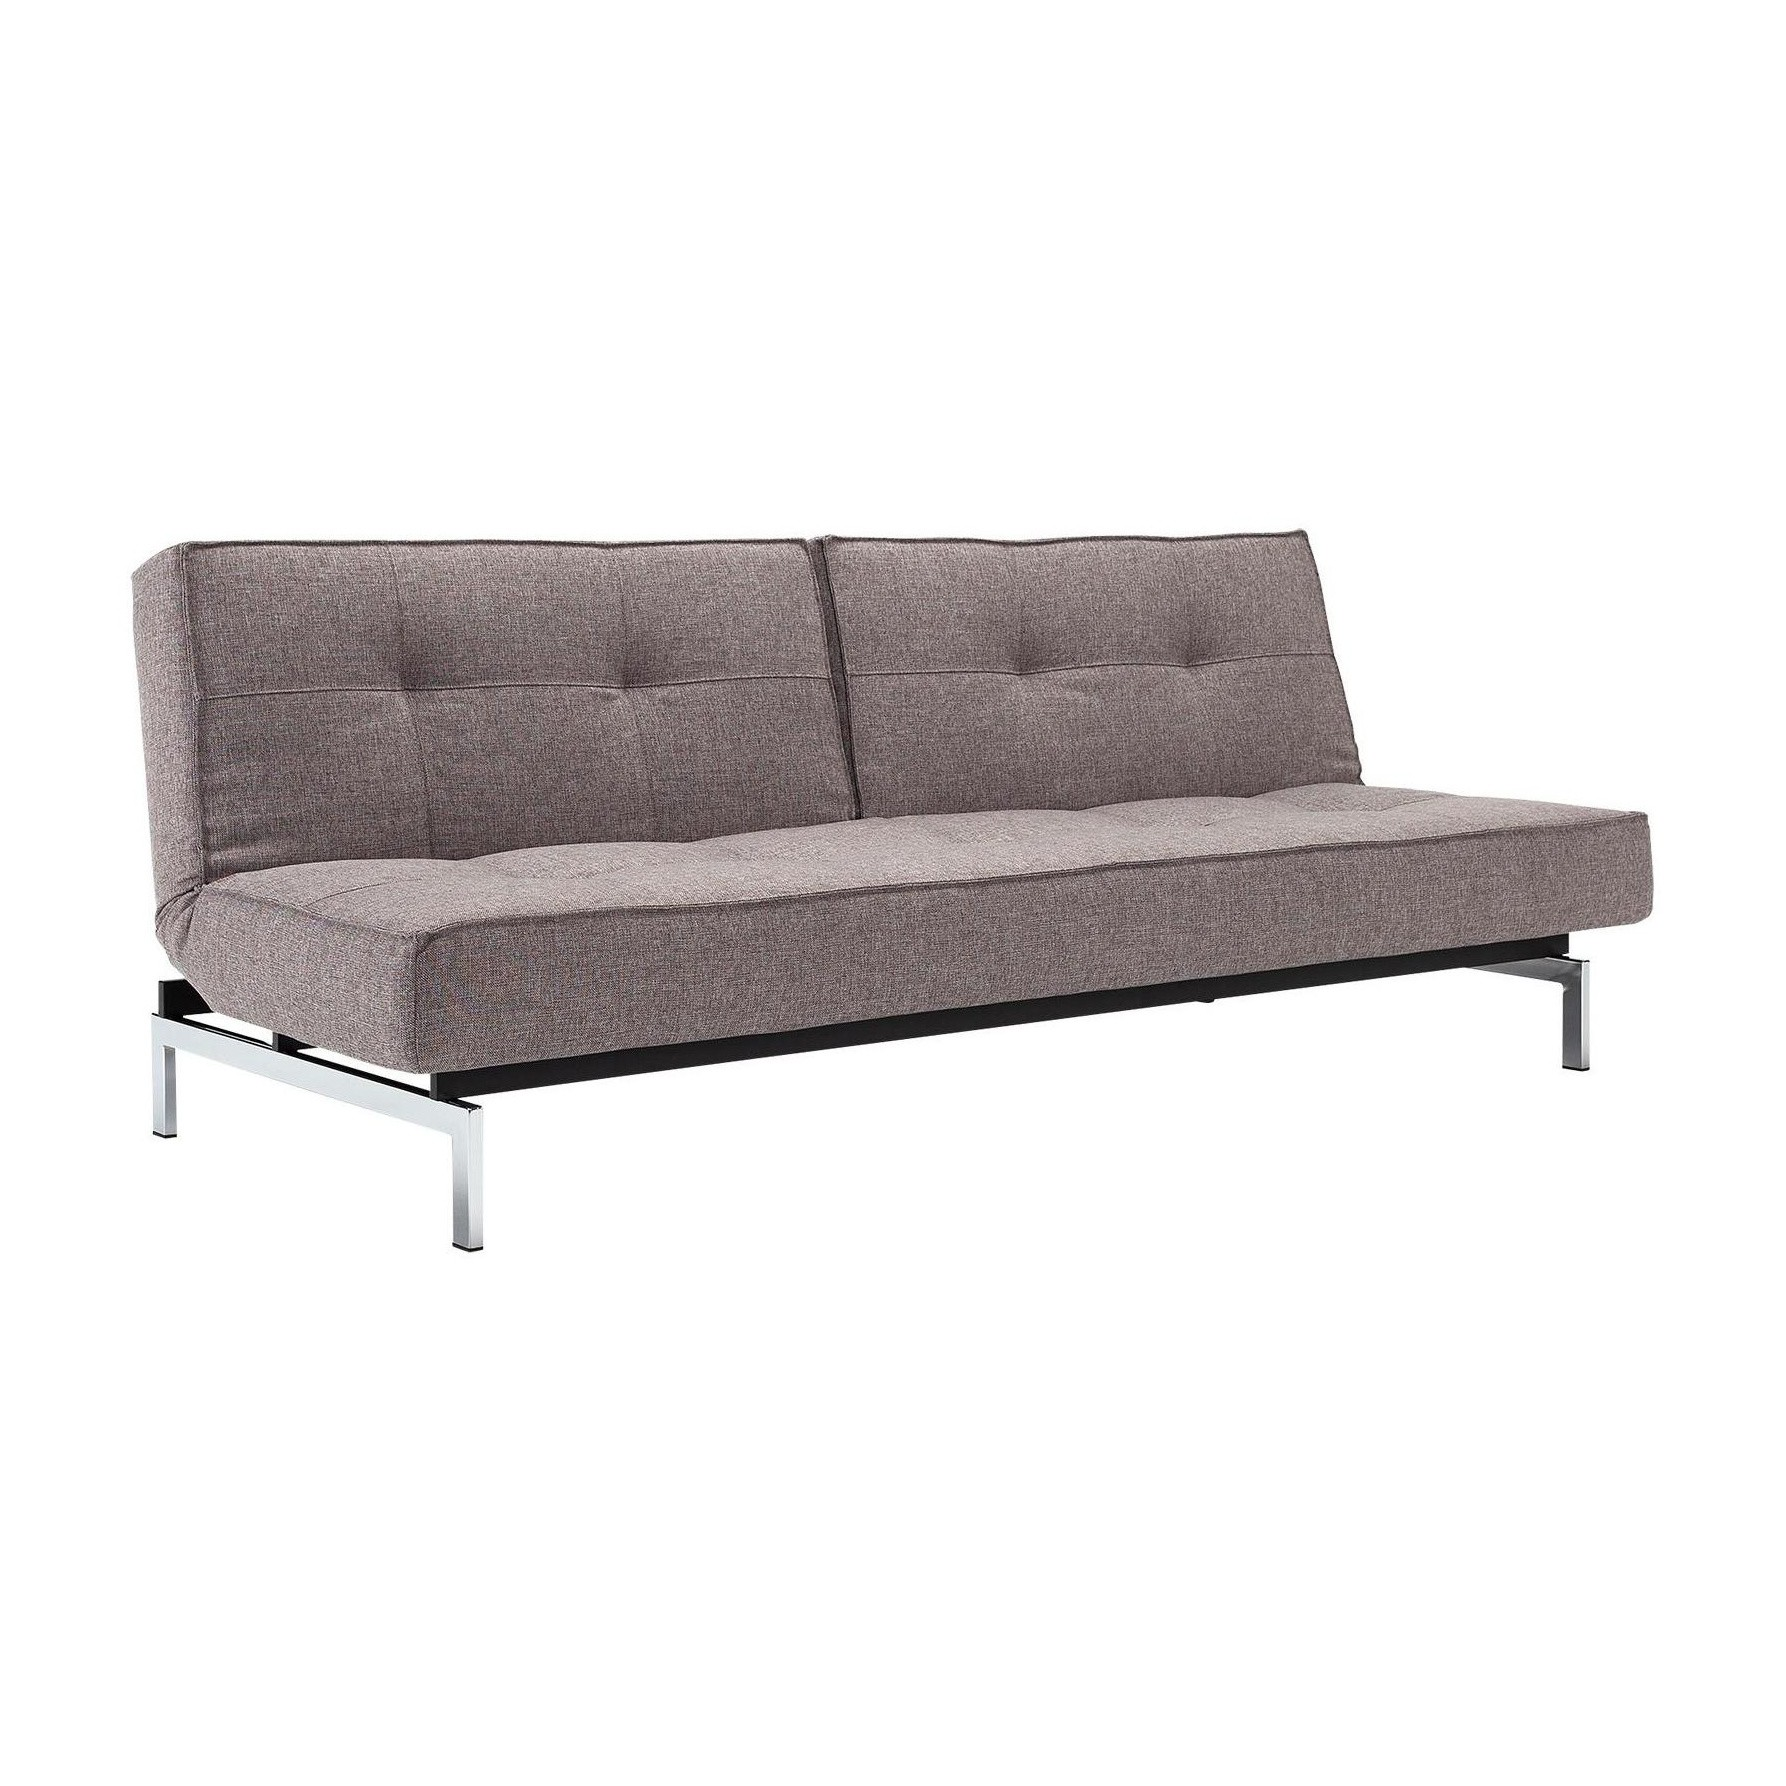 Full Size of Innovation Splitback Schlafsofa Chrom 210x90cm Ambientedirect Komplett Schlafzimmer Günstig Loddenkemper Liegefläche 180x200 Türkische Sofa Goodlife Hussen Sofa Schlaf Sofa